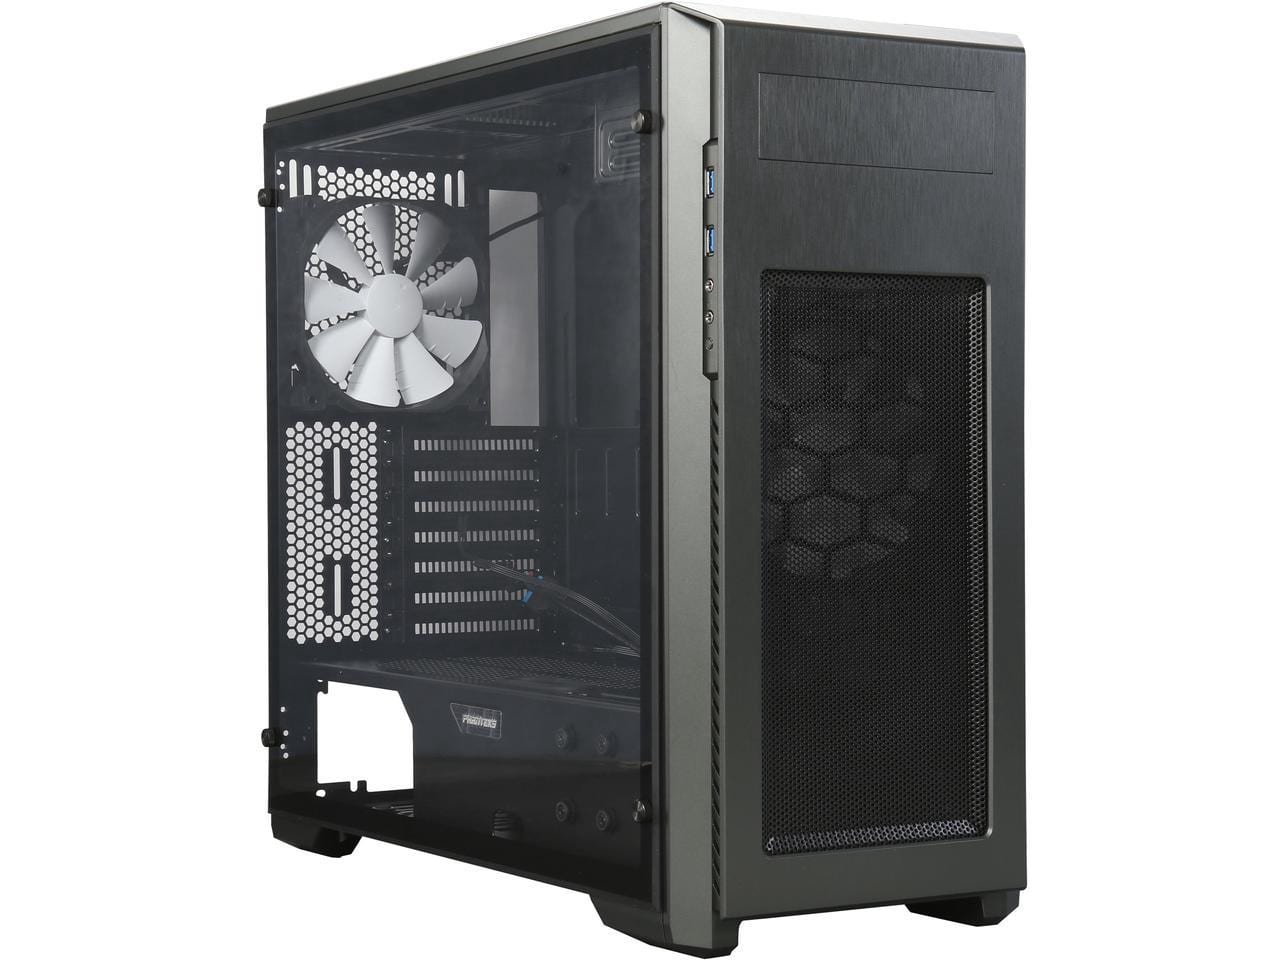 Phanteks ENTHOO Pro M Acrylic Mid Tower Case (Titanium Green) - $49.99 AR